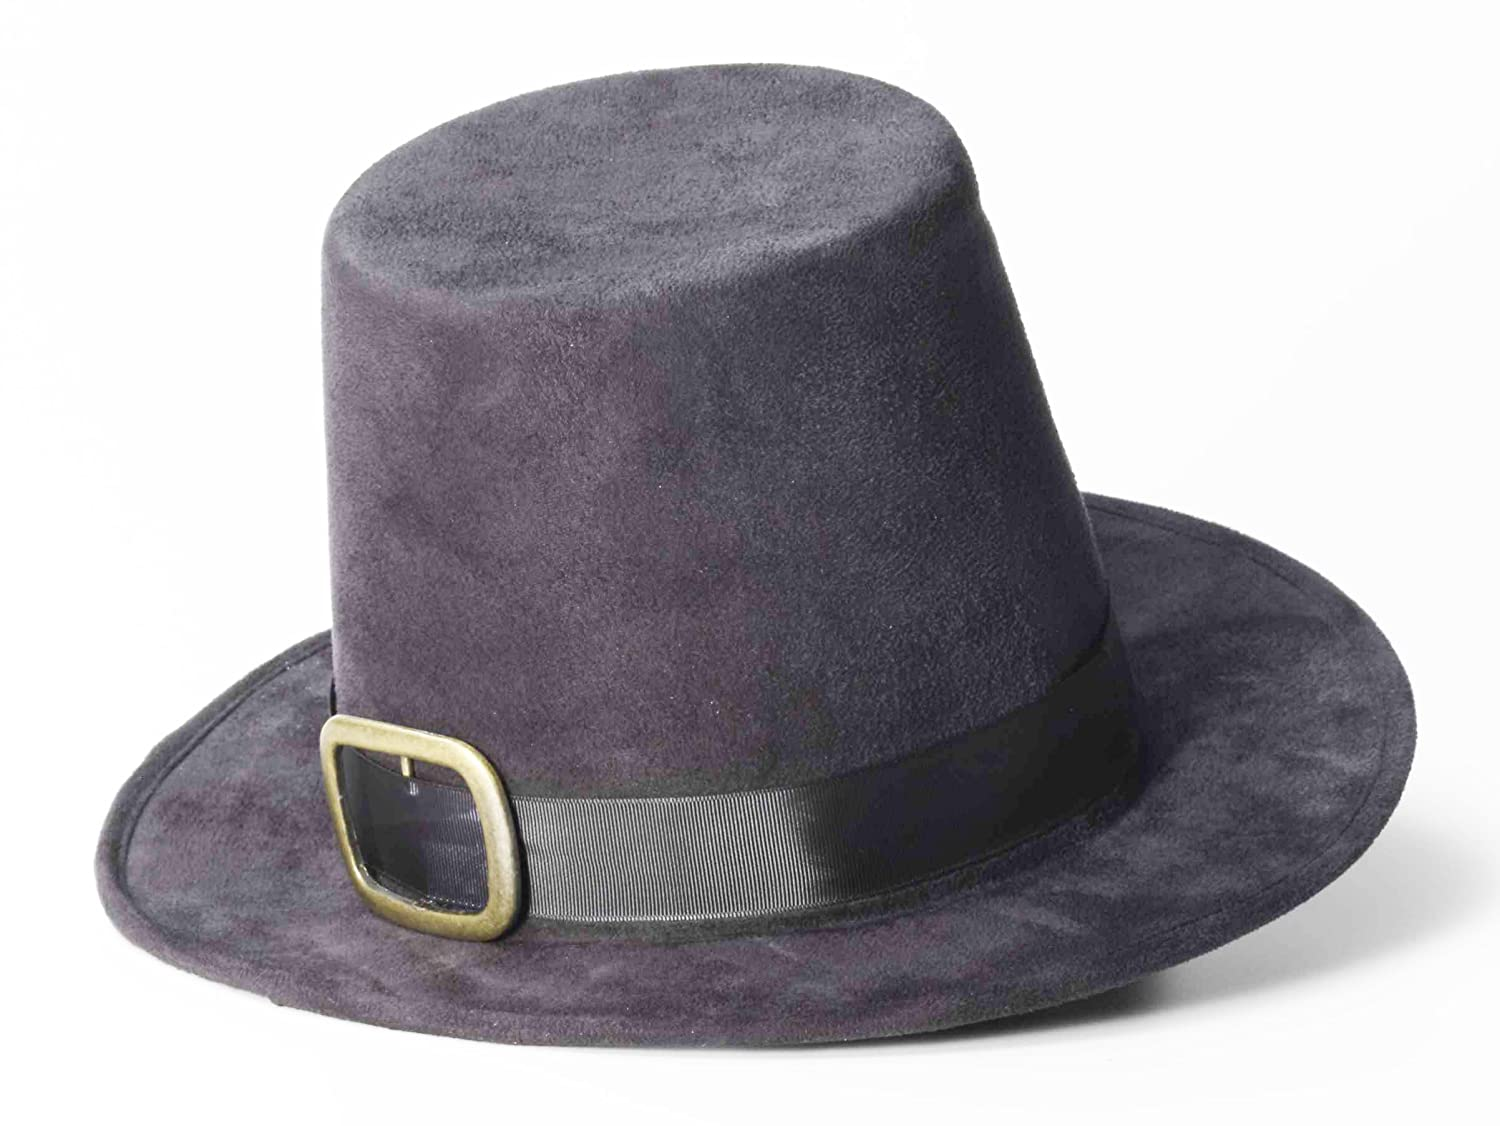 pilgrim style hat Guido Guy Fawkes clothing